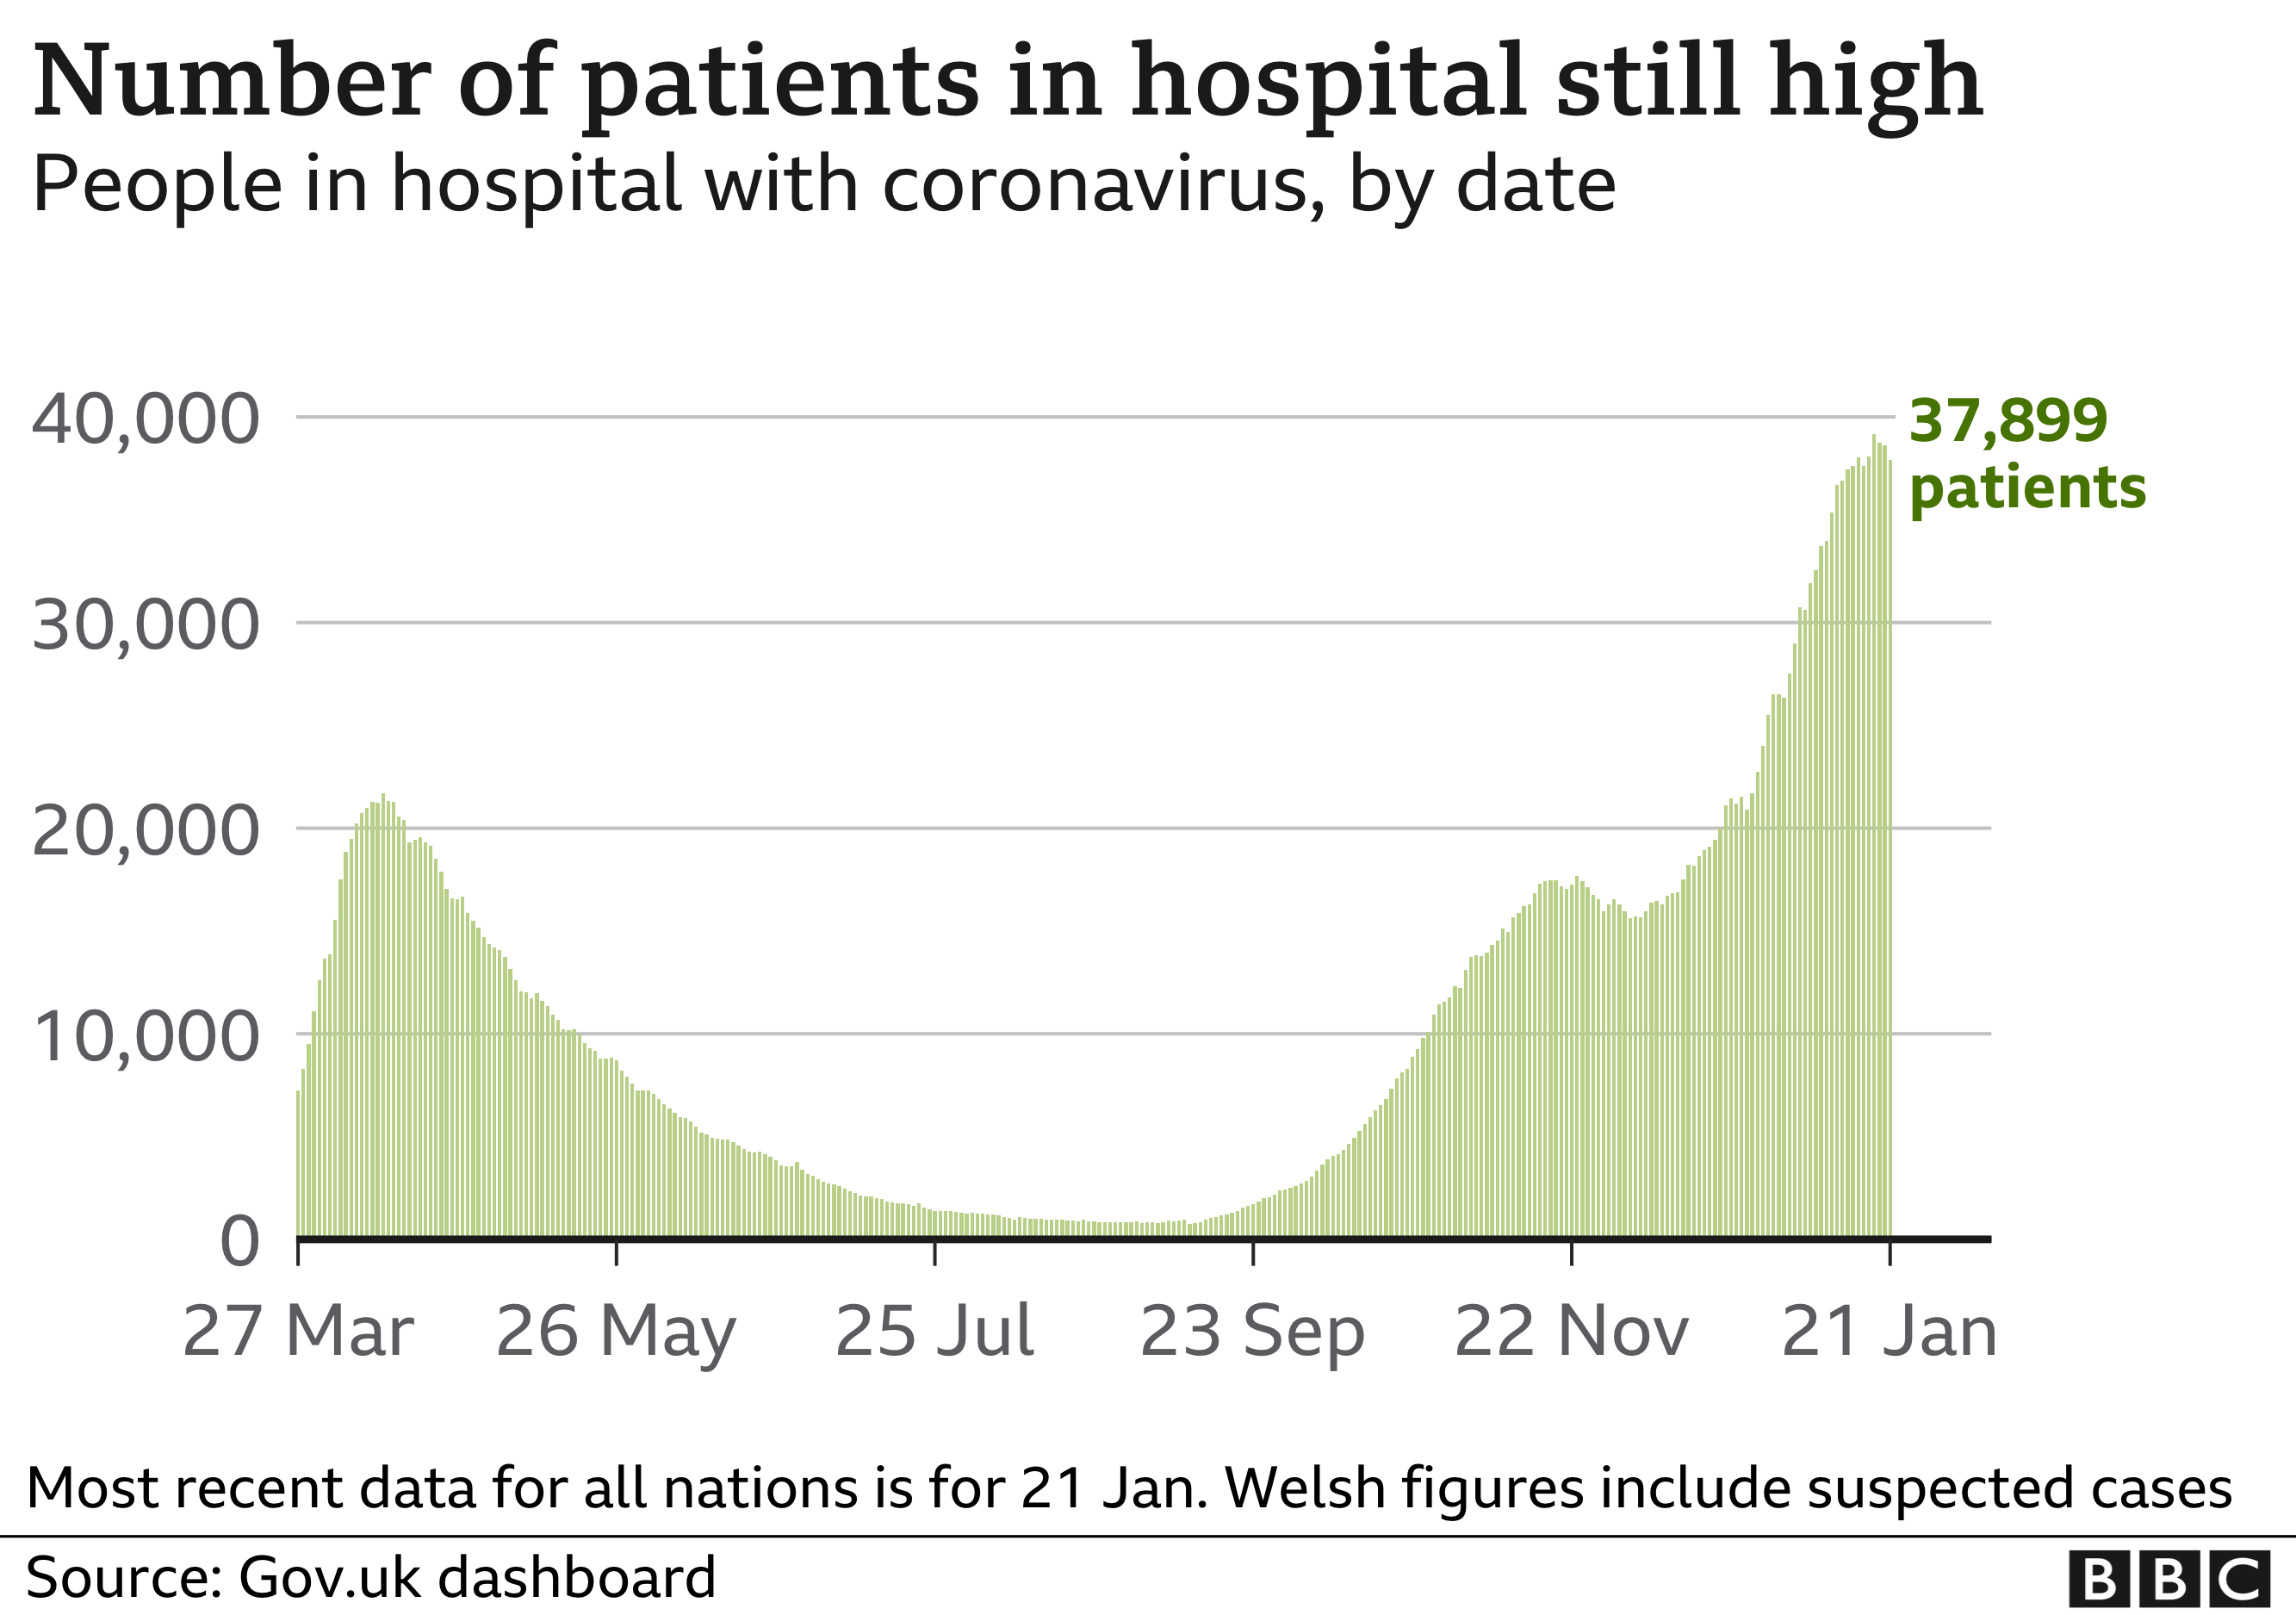 Graph showing the number of people in hospital in the UK with coronavirus